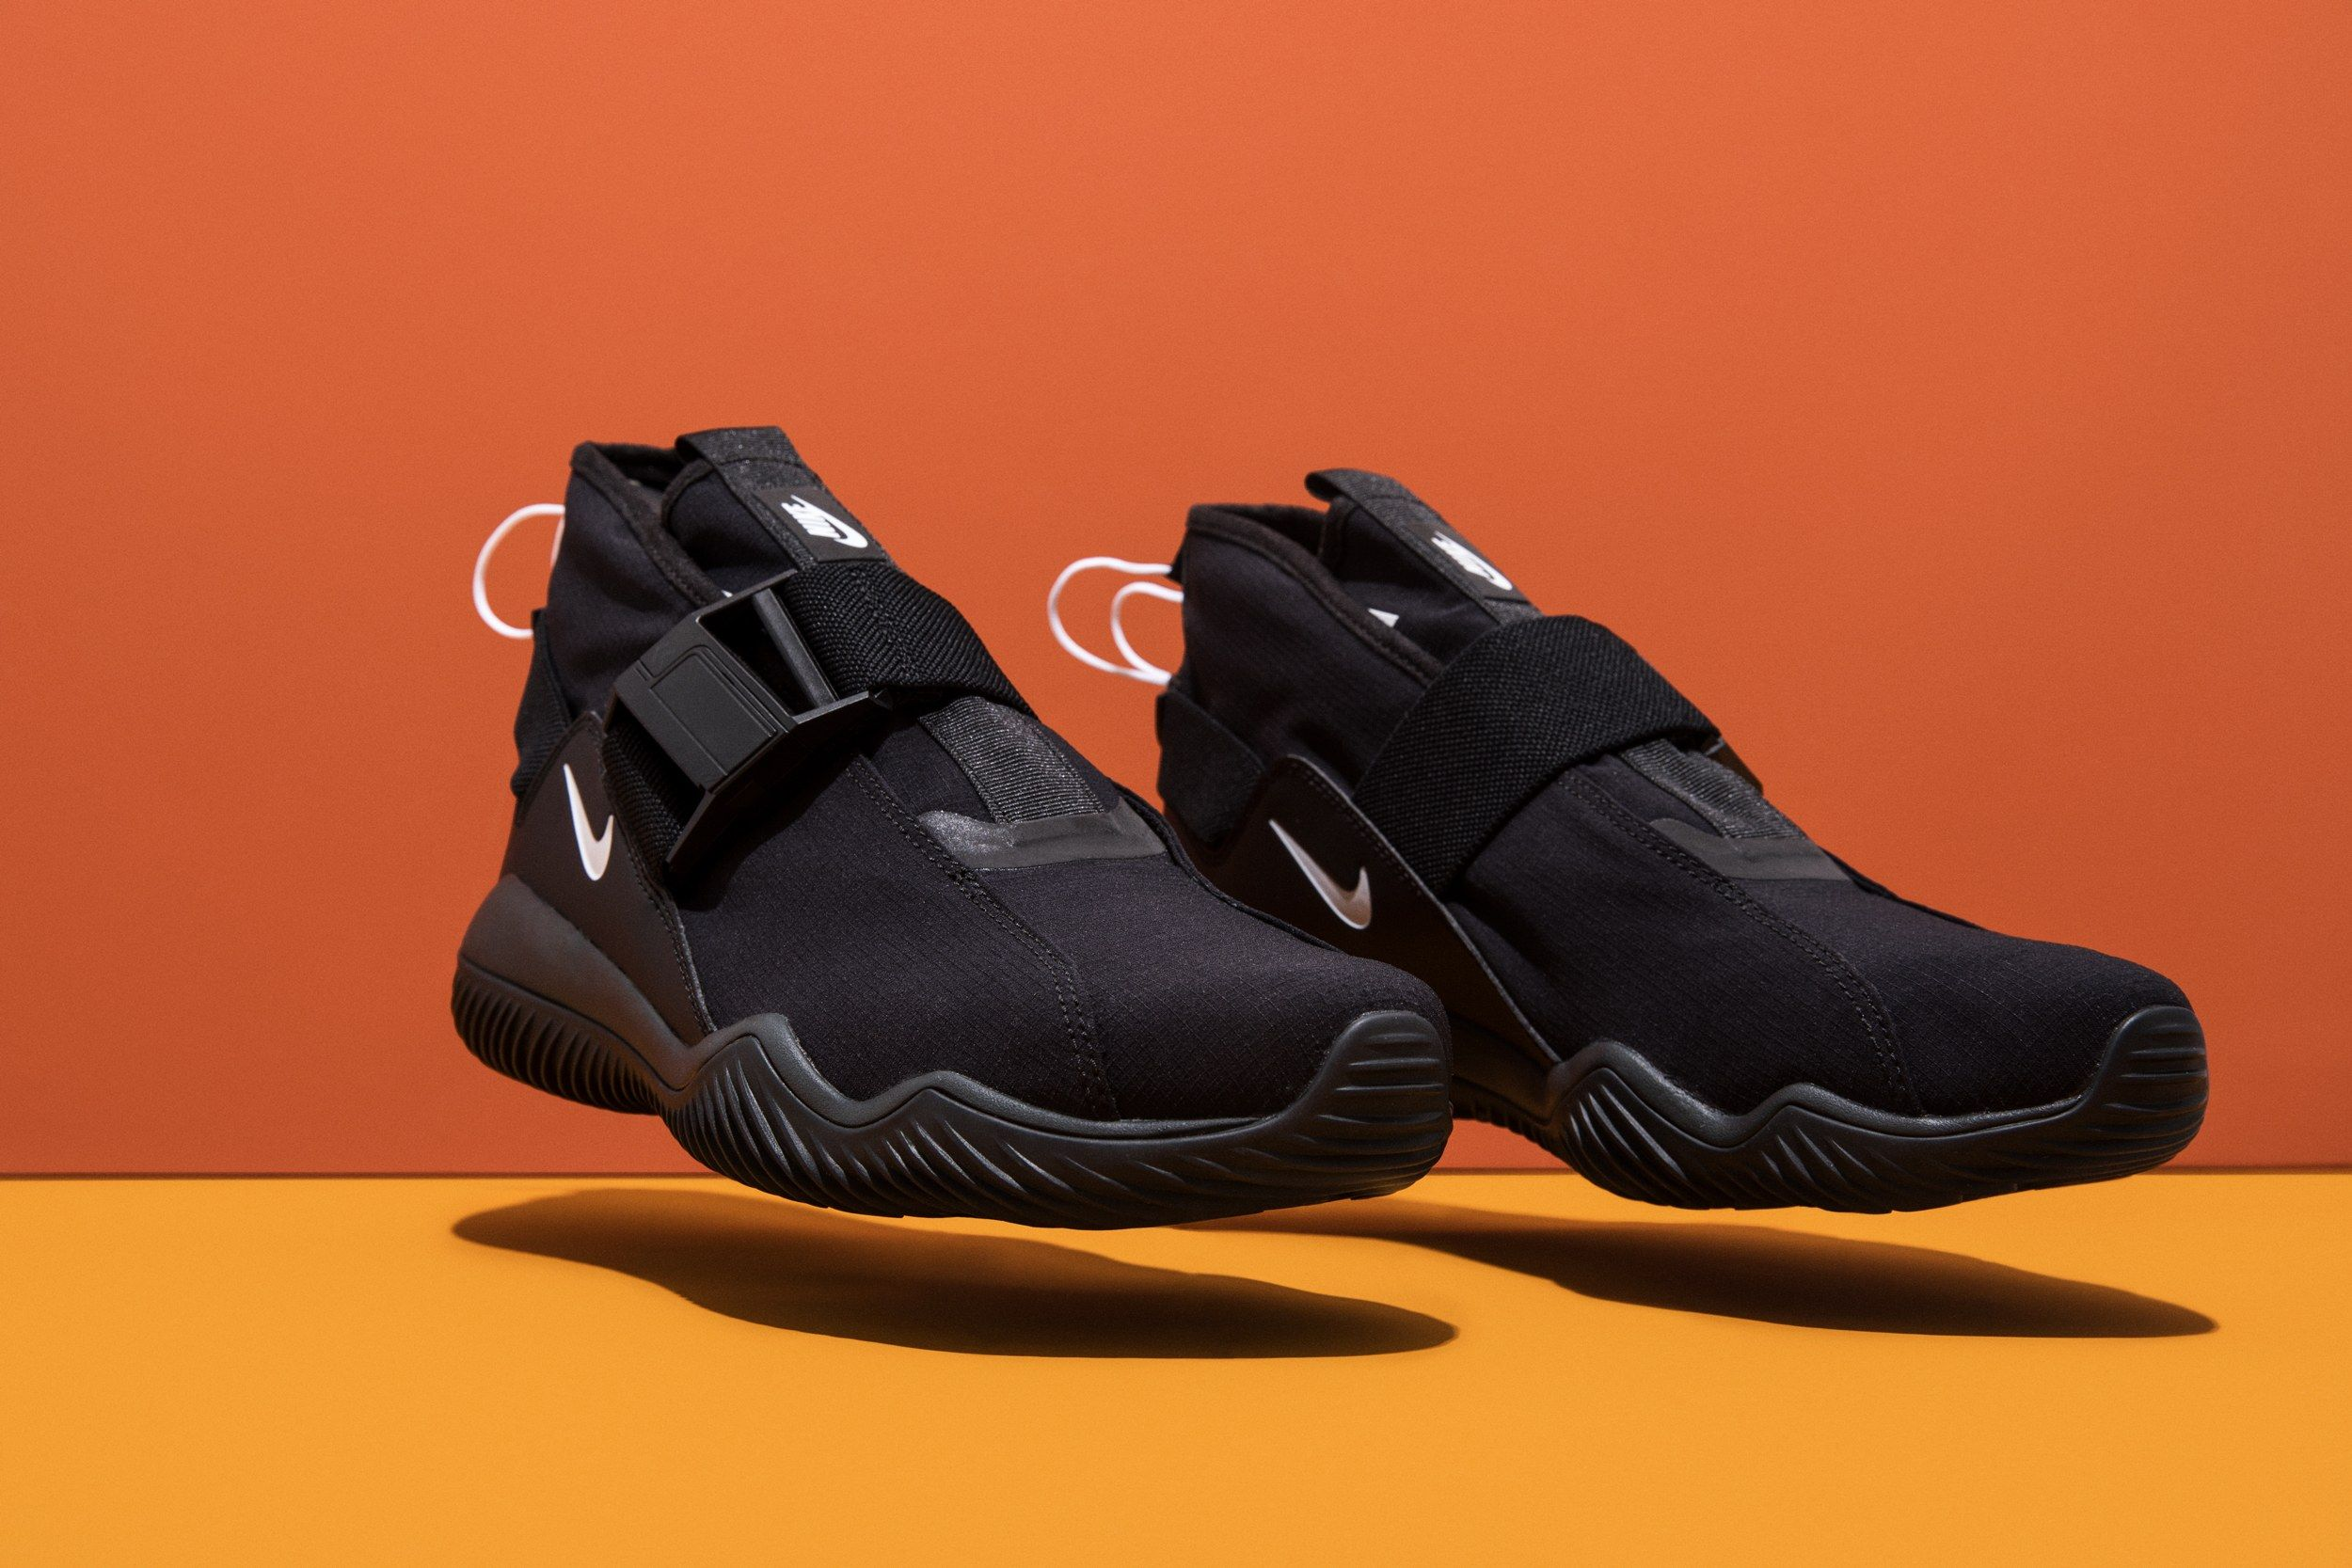 finest selection c535e 9762e Our favorite kicks from what s shaping up to be one of the most innovative  years in sneakers in a long time. Here are the best sneakers of